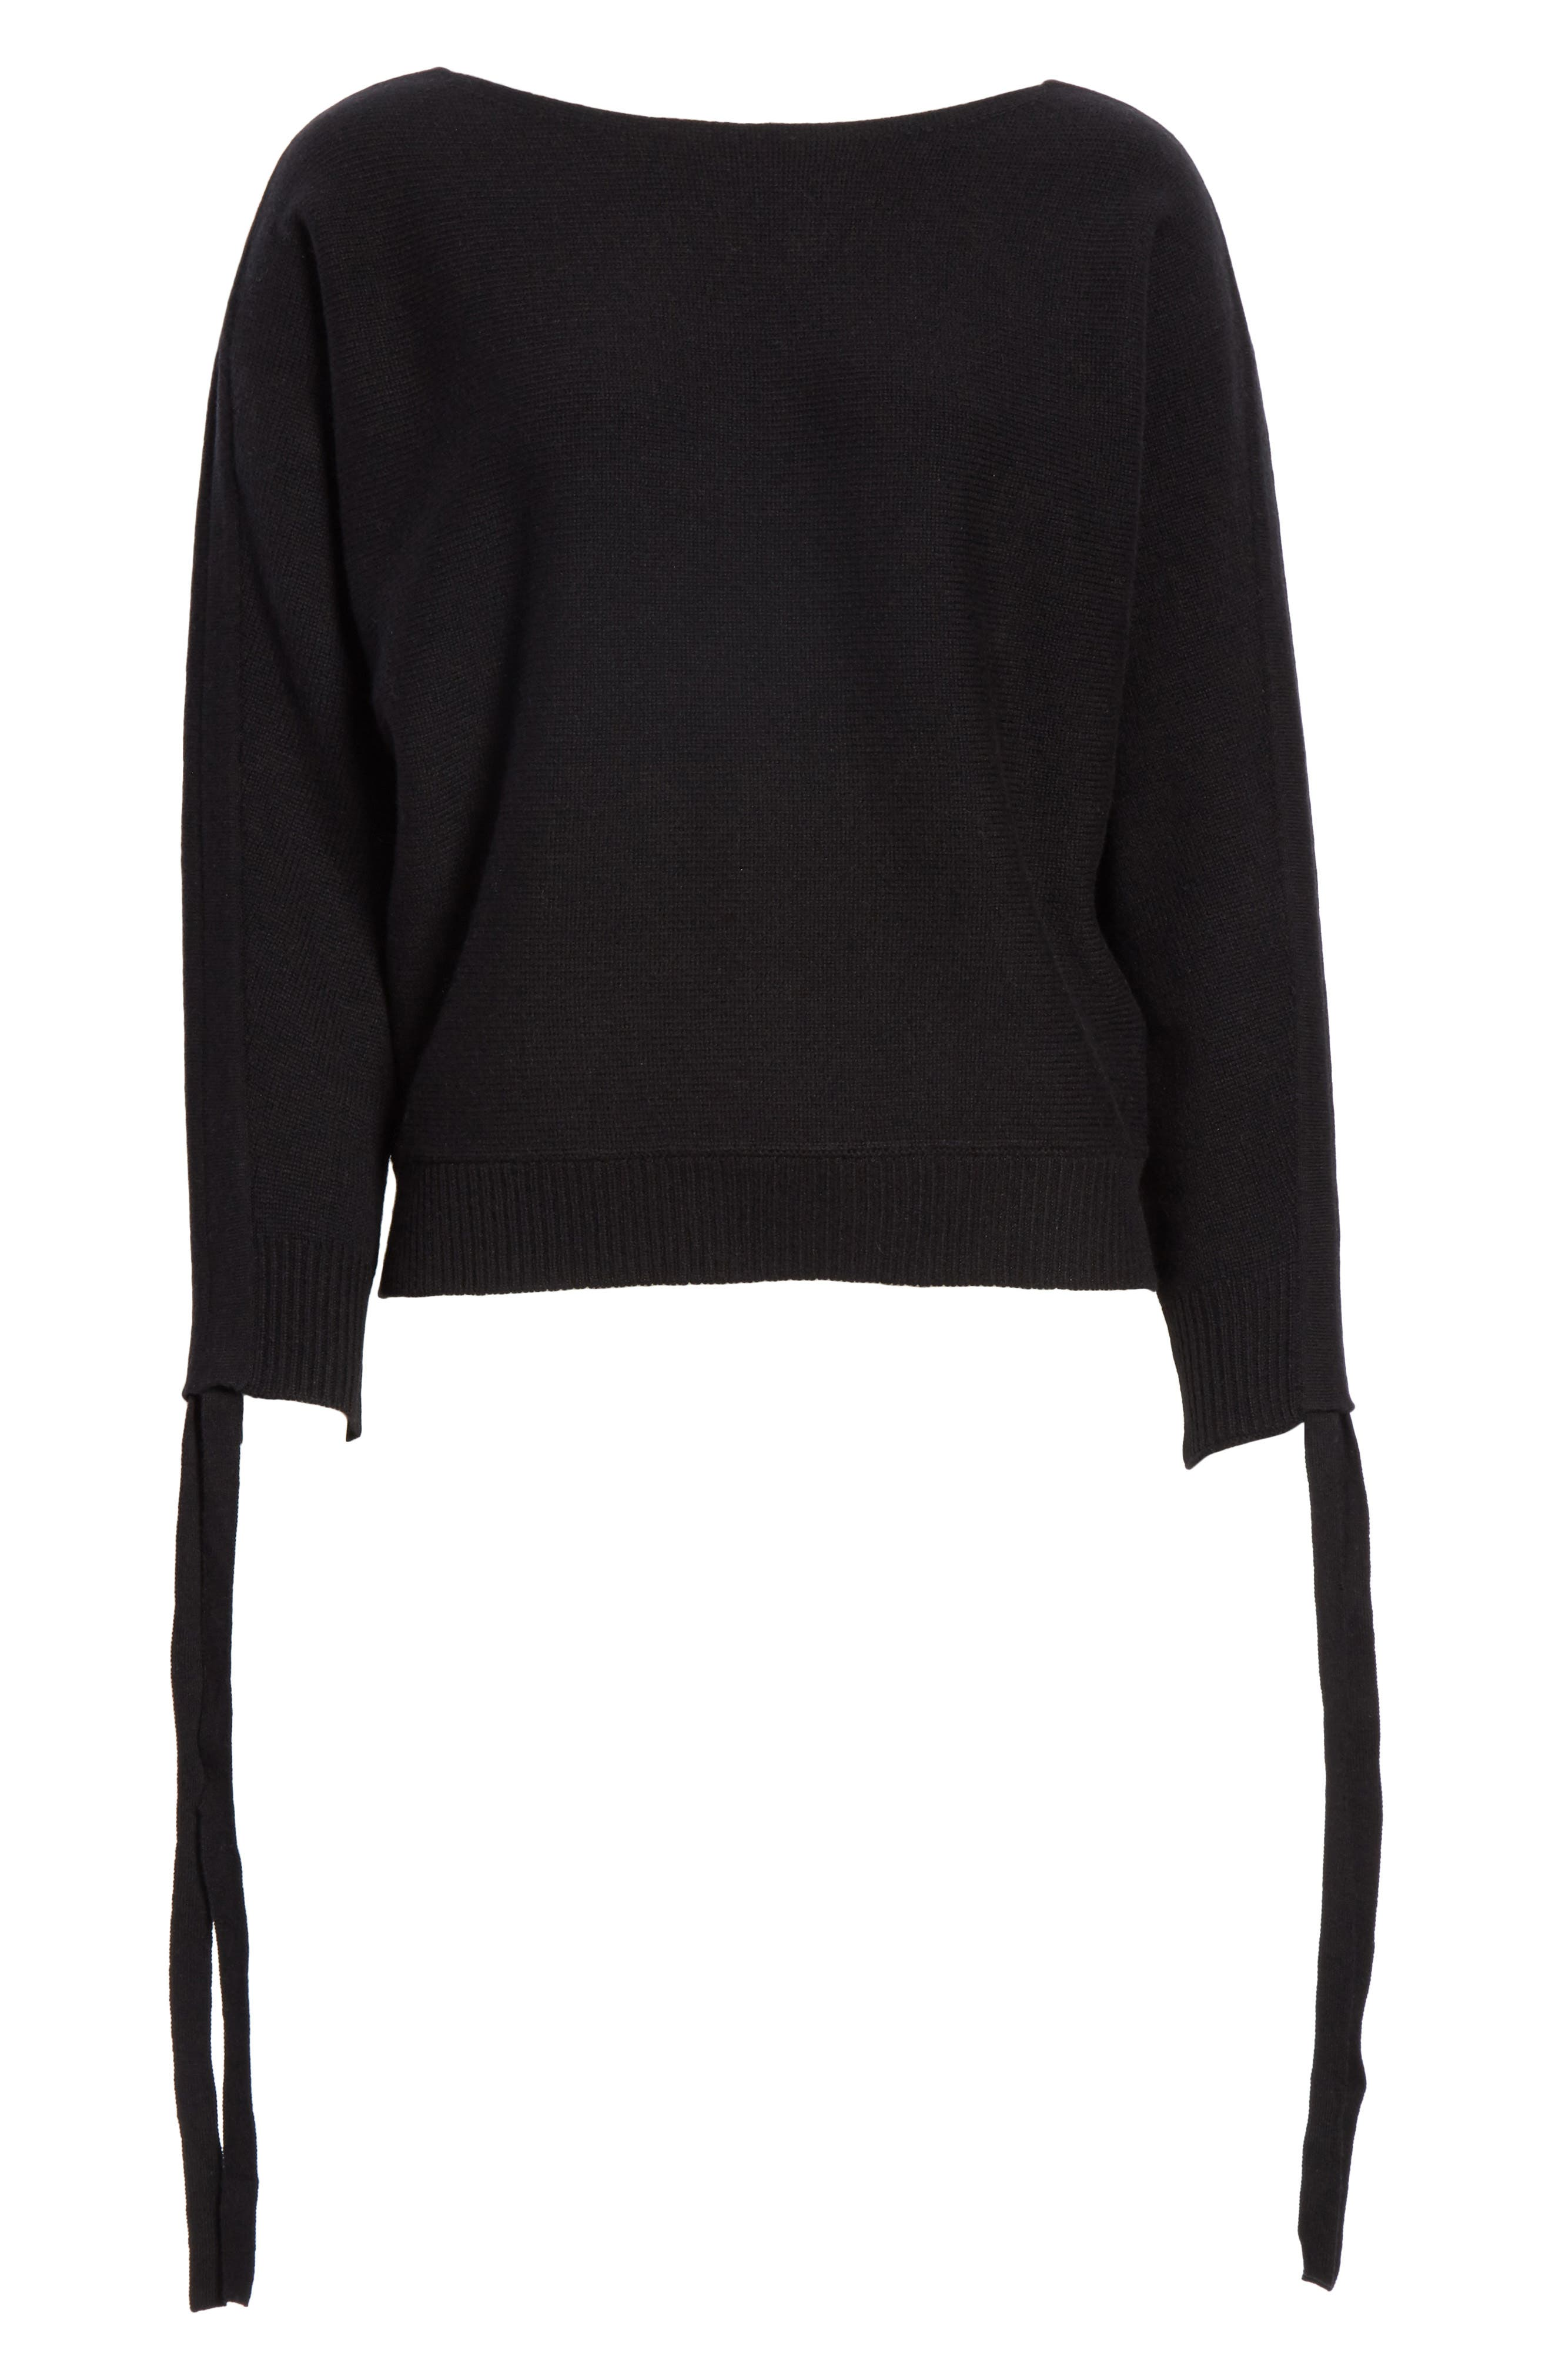 Dannee Wool & Cashmere Sweater,                             Alternate thumbnail 6, color,                             002